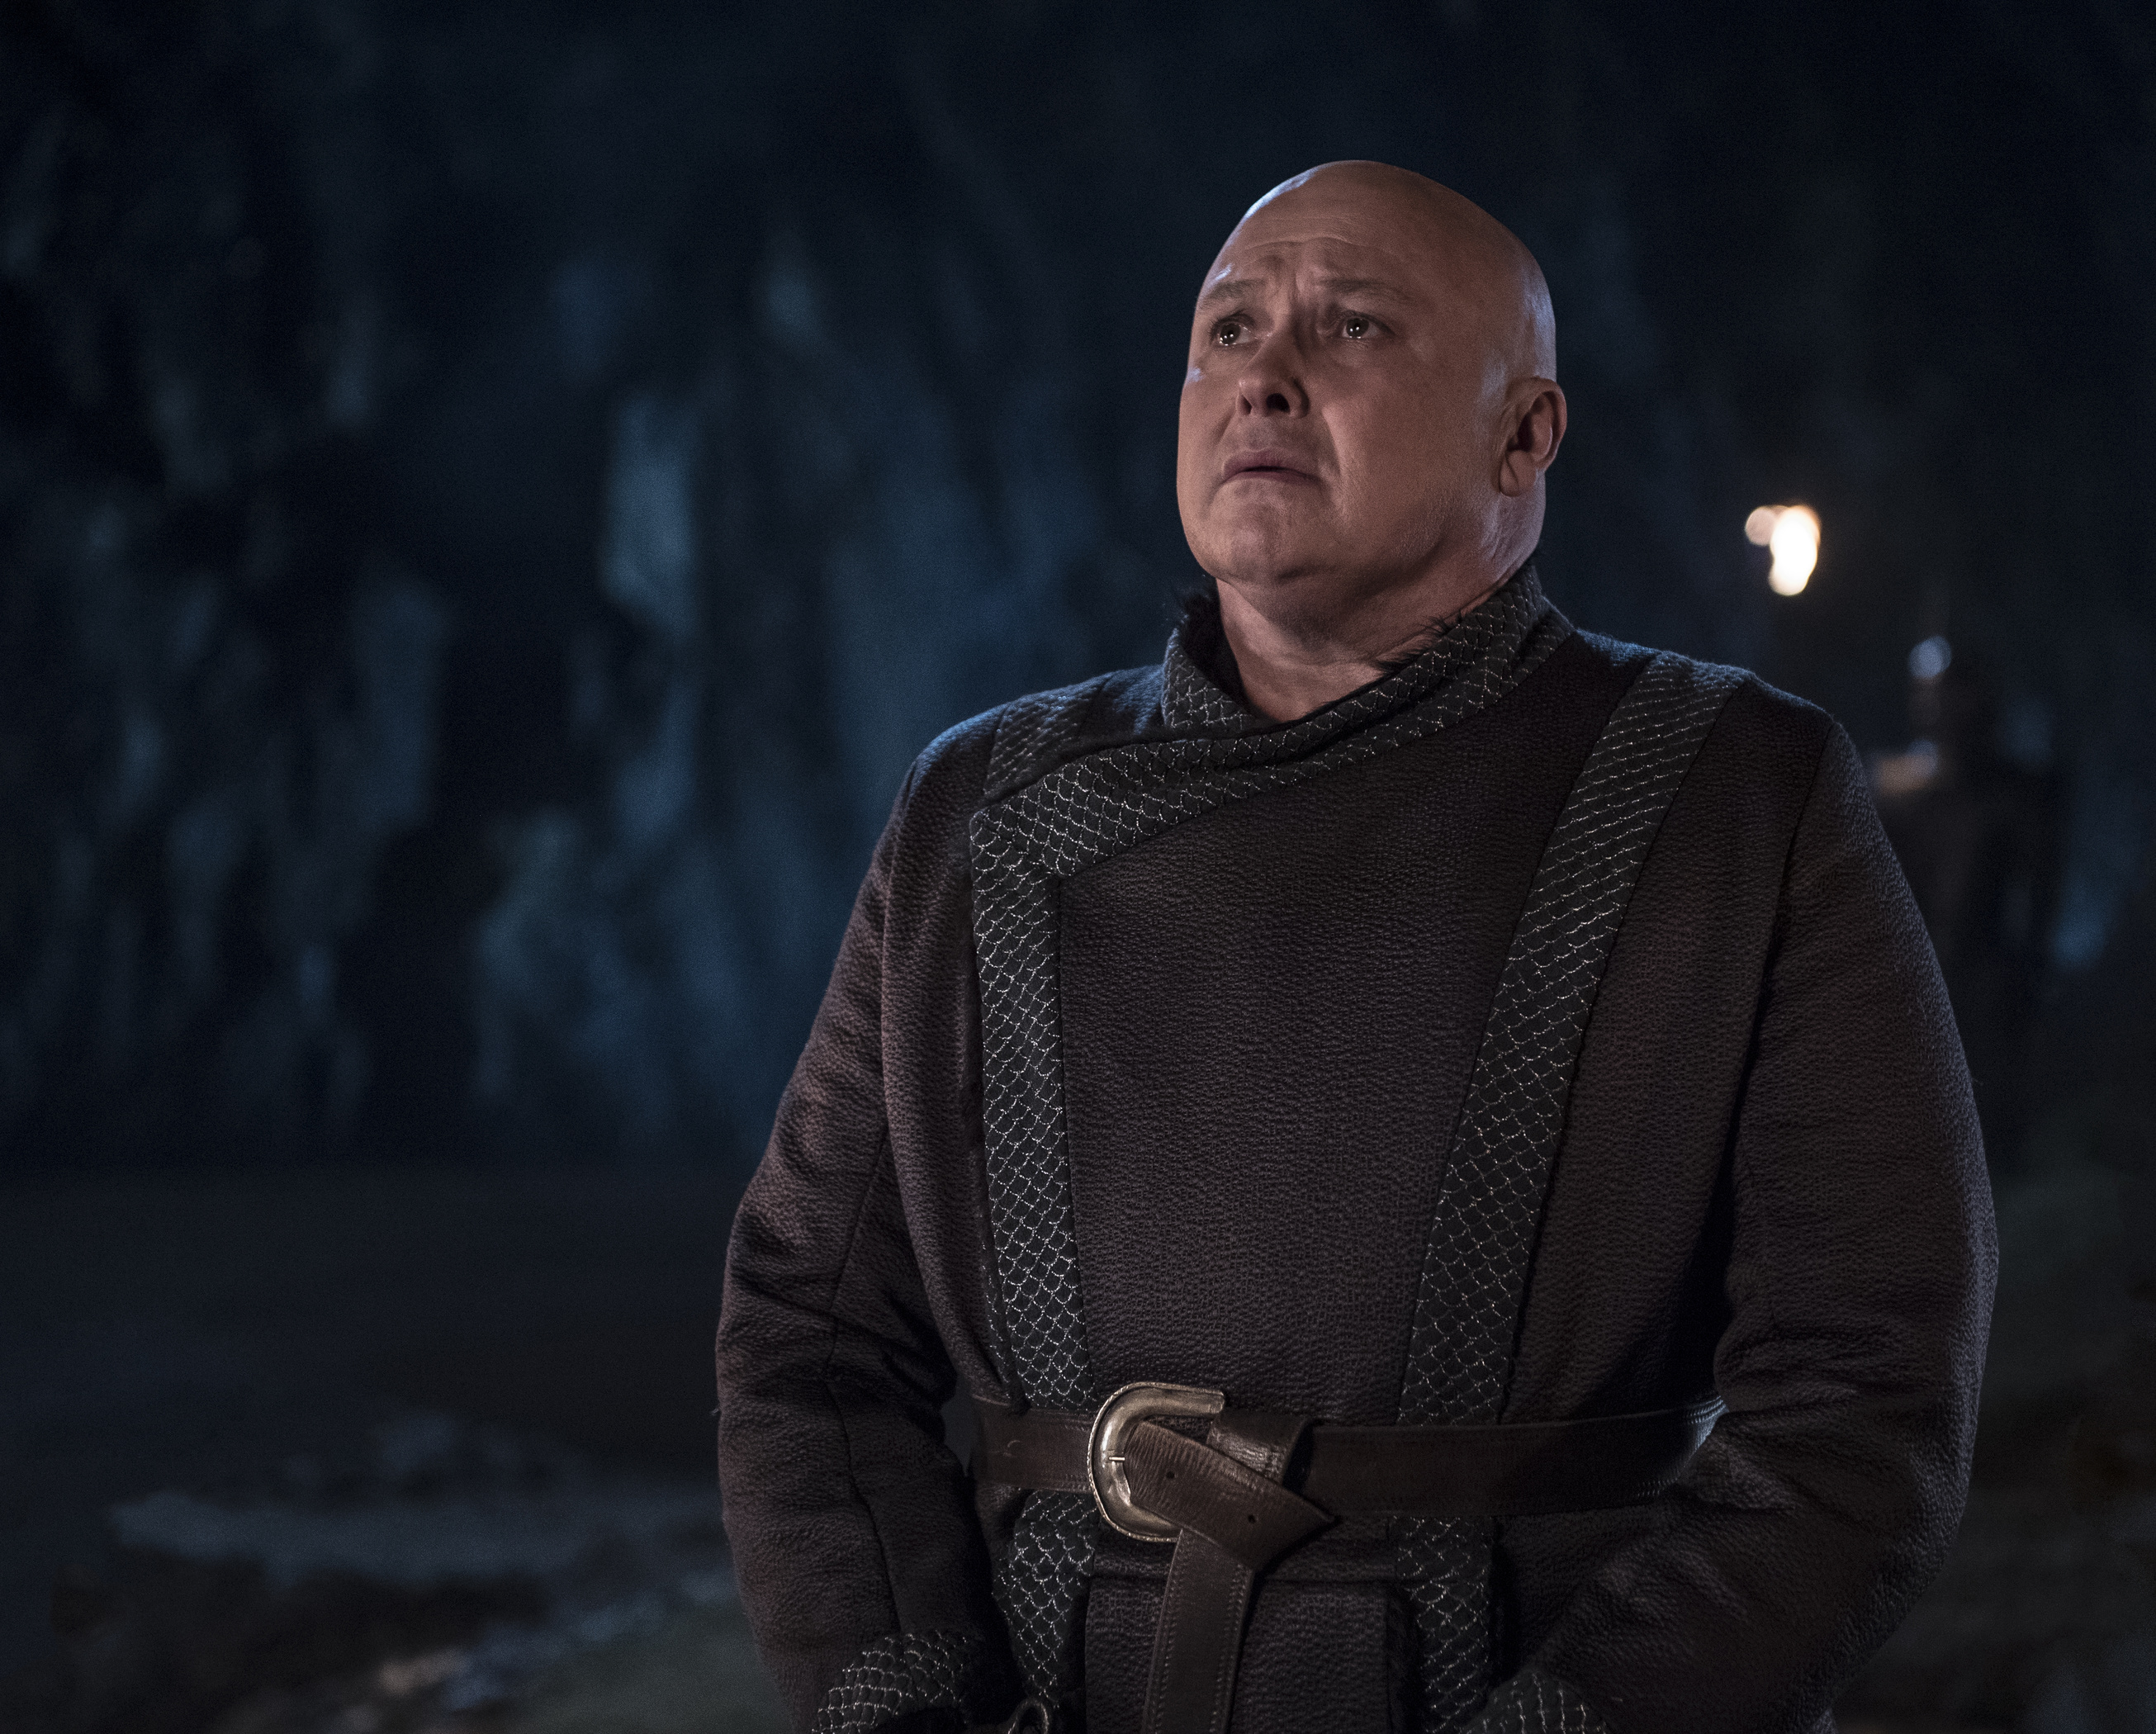 Varys memes flooded Twitter after he appears before Dany in Game of Thrones season 8 episode 5